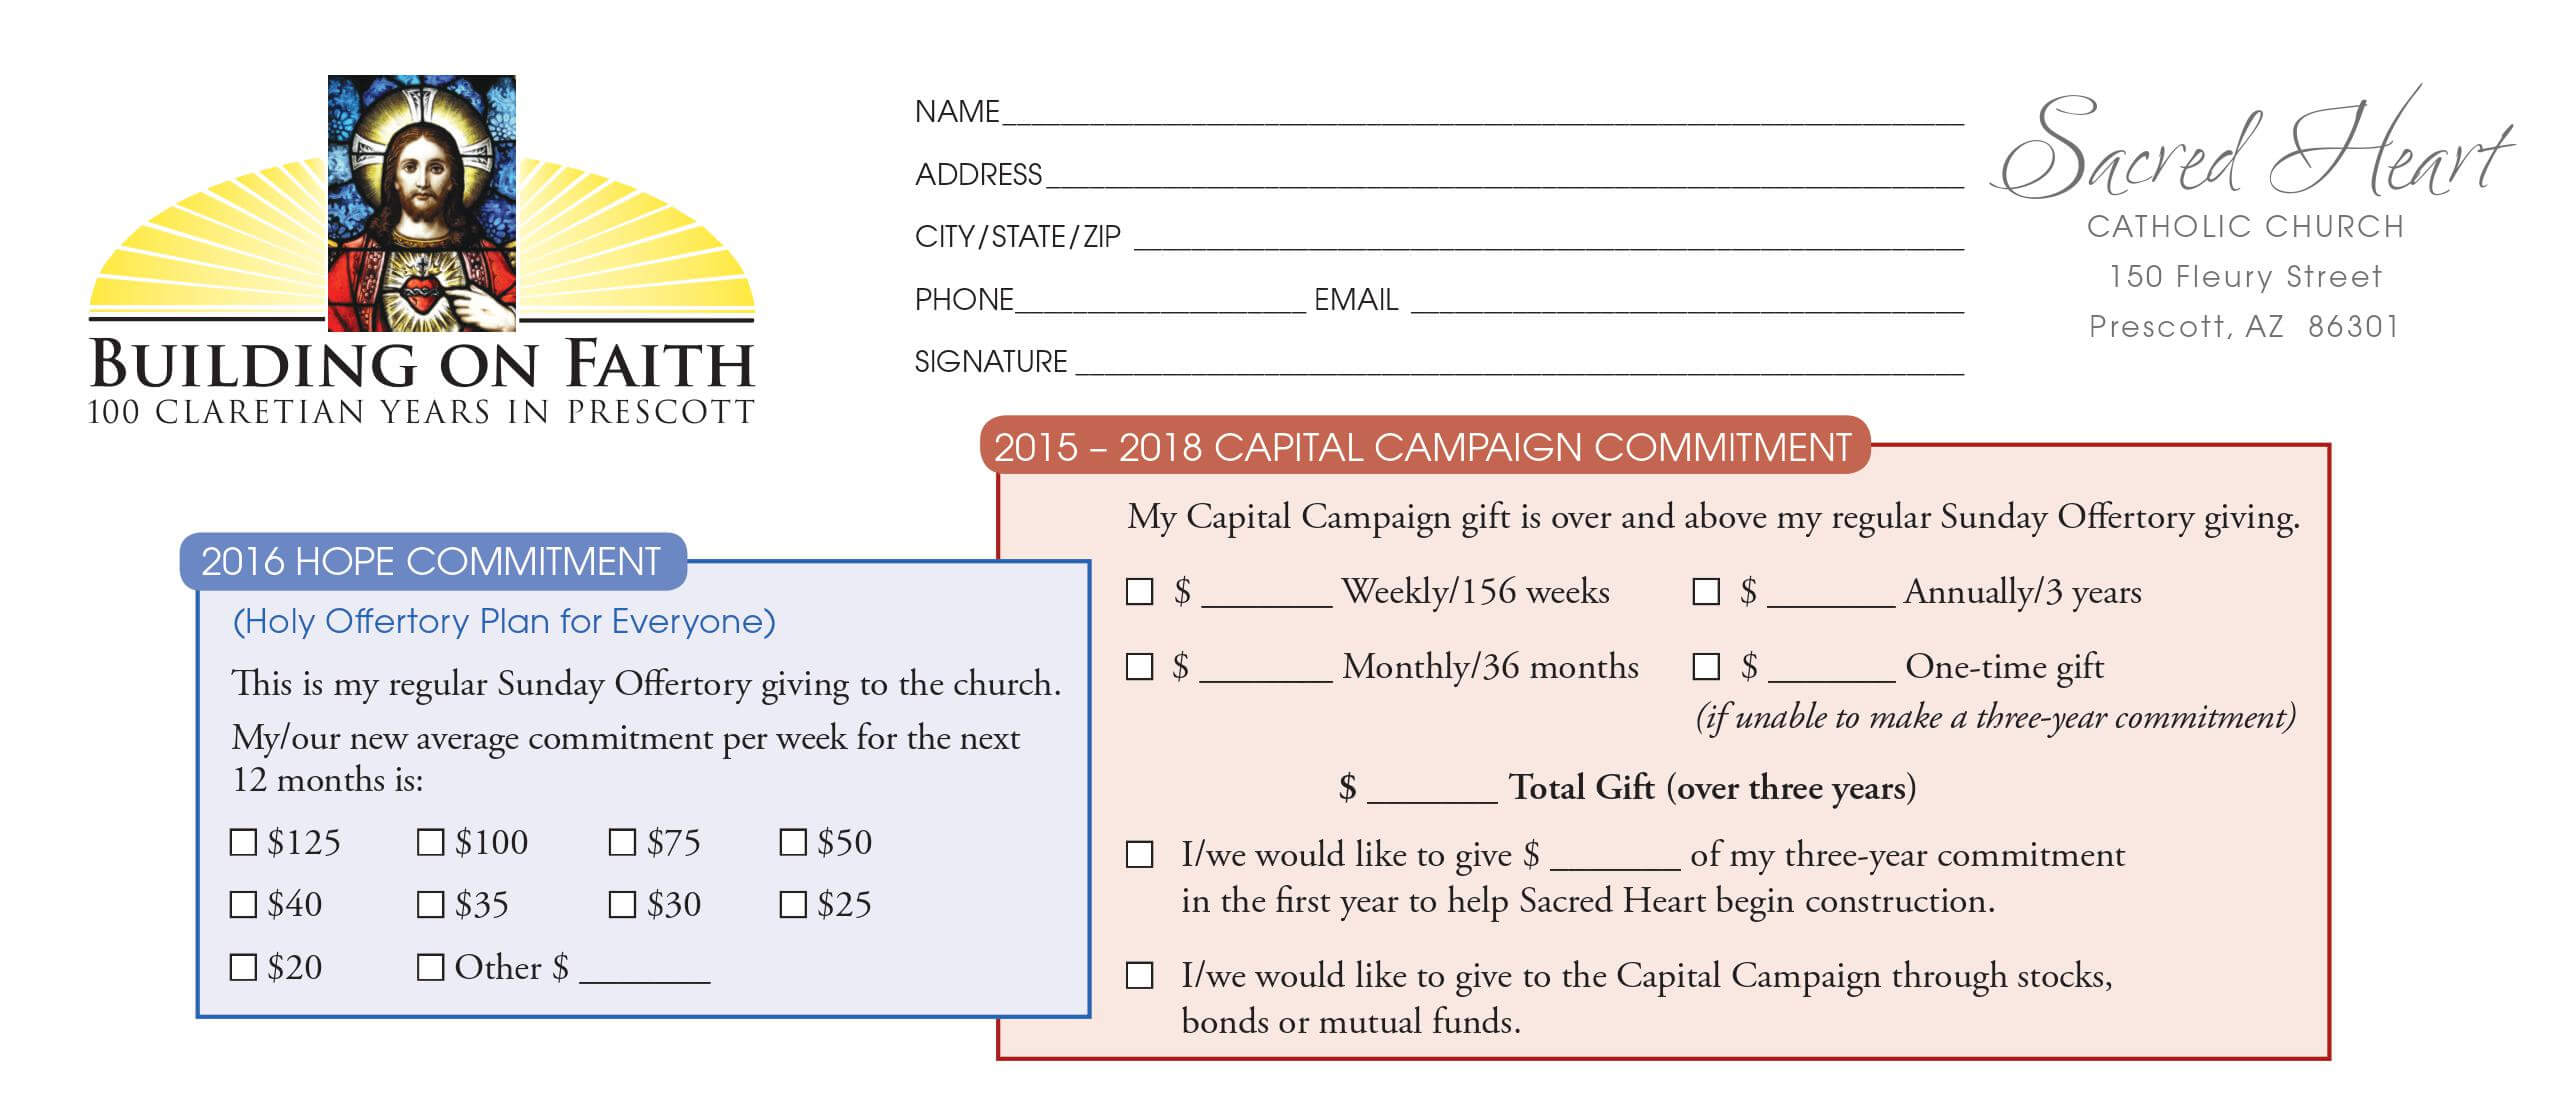 Church Capital Campaign Pledge Card Samples pertaining to Pledge Card Template For Church